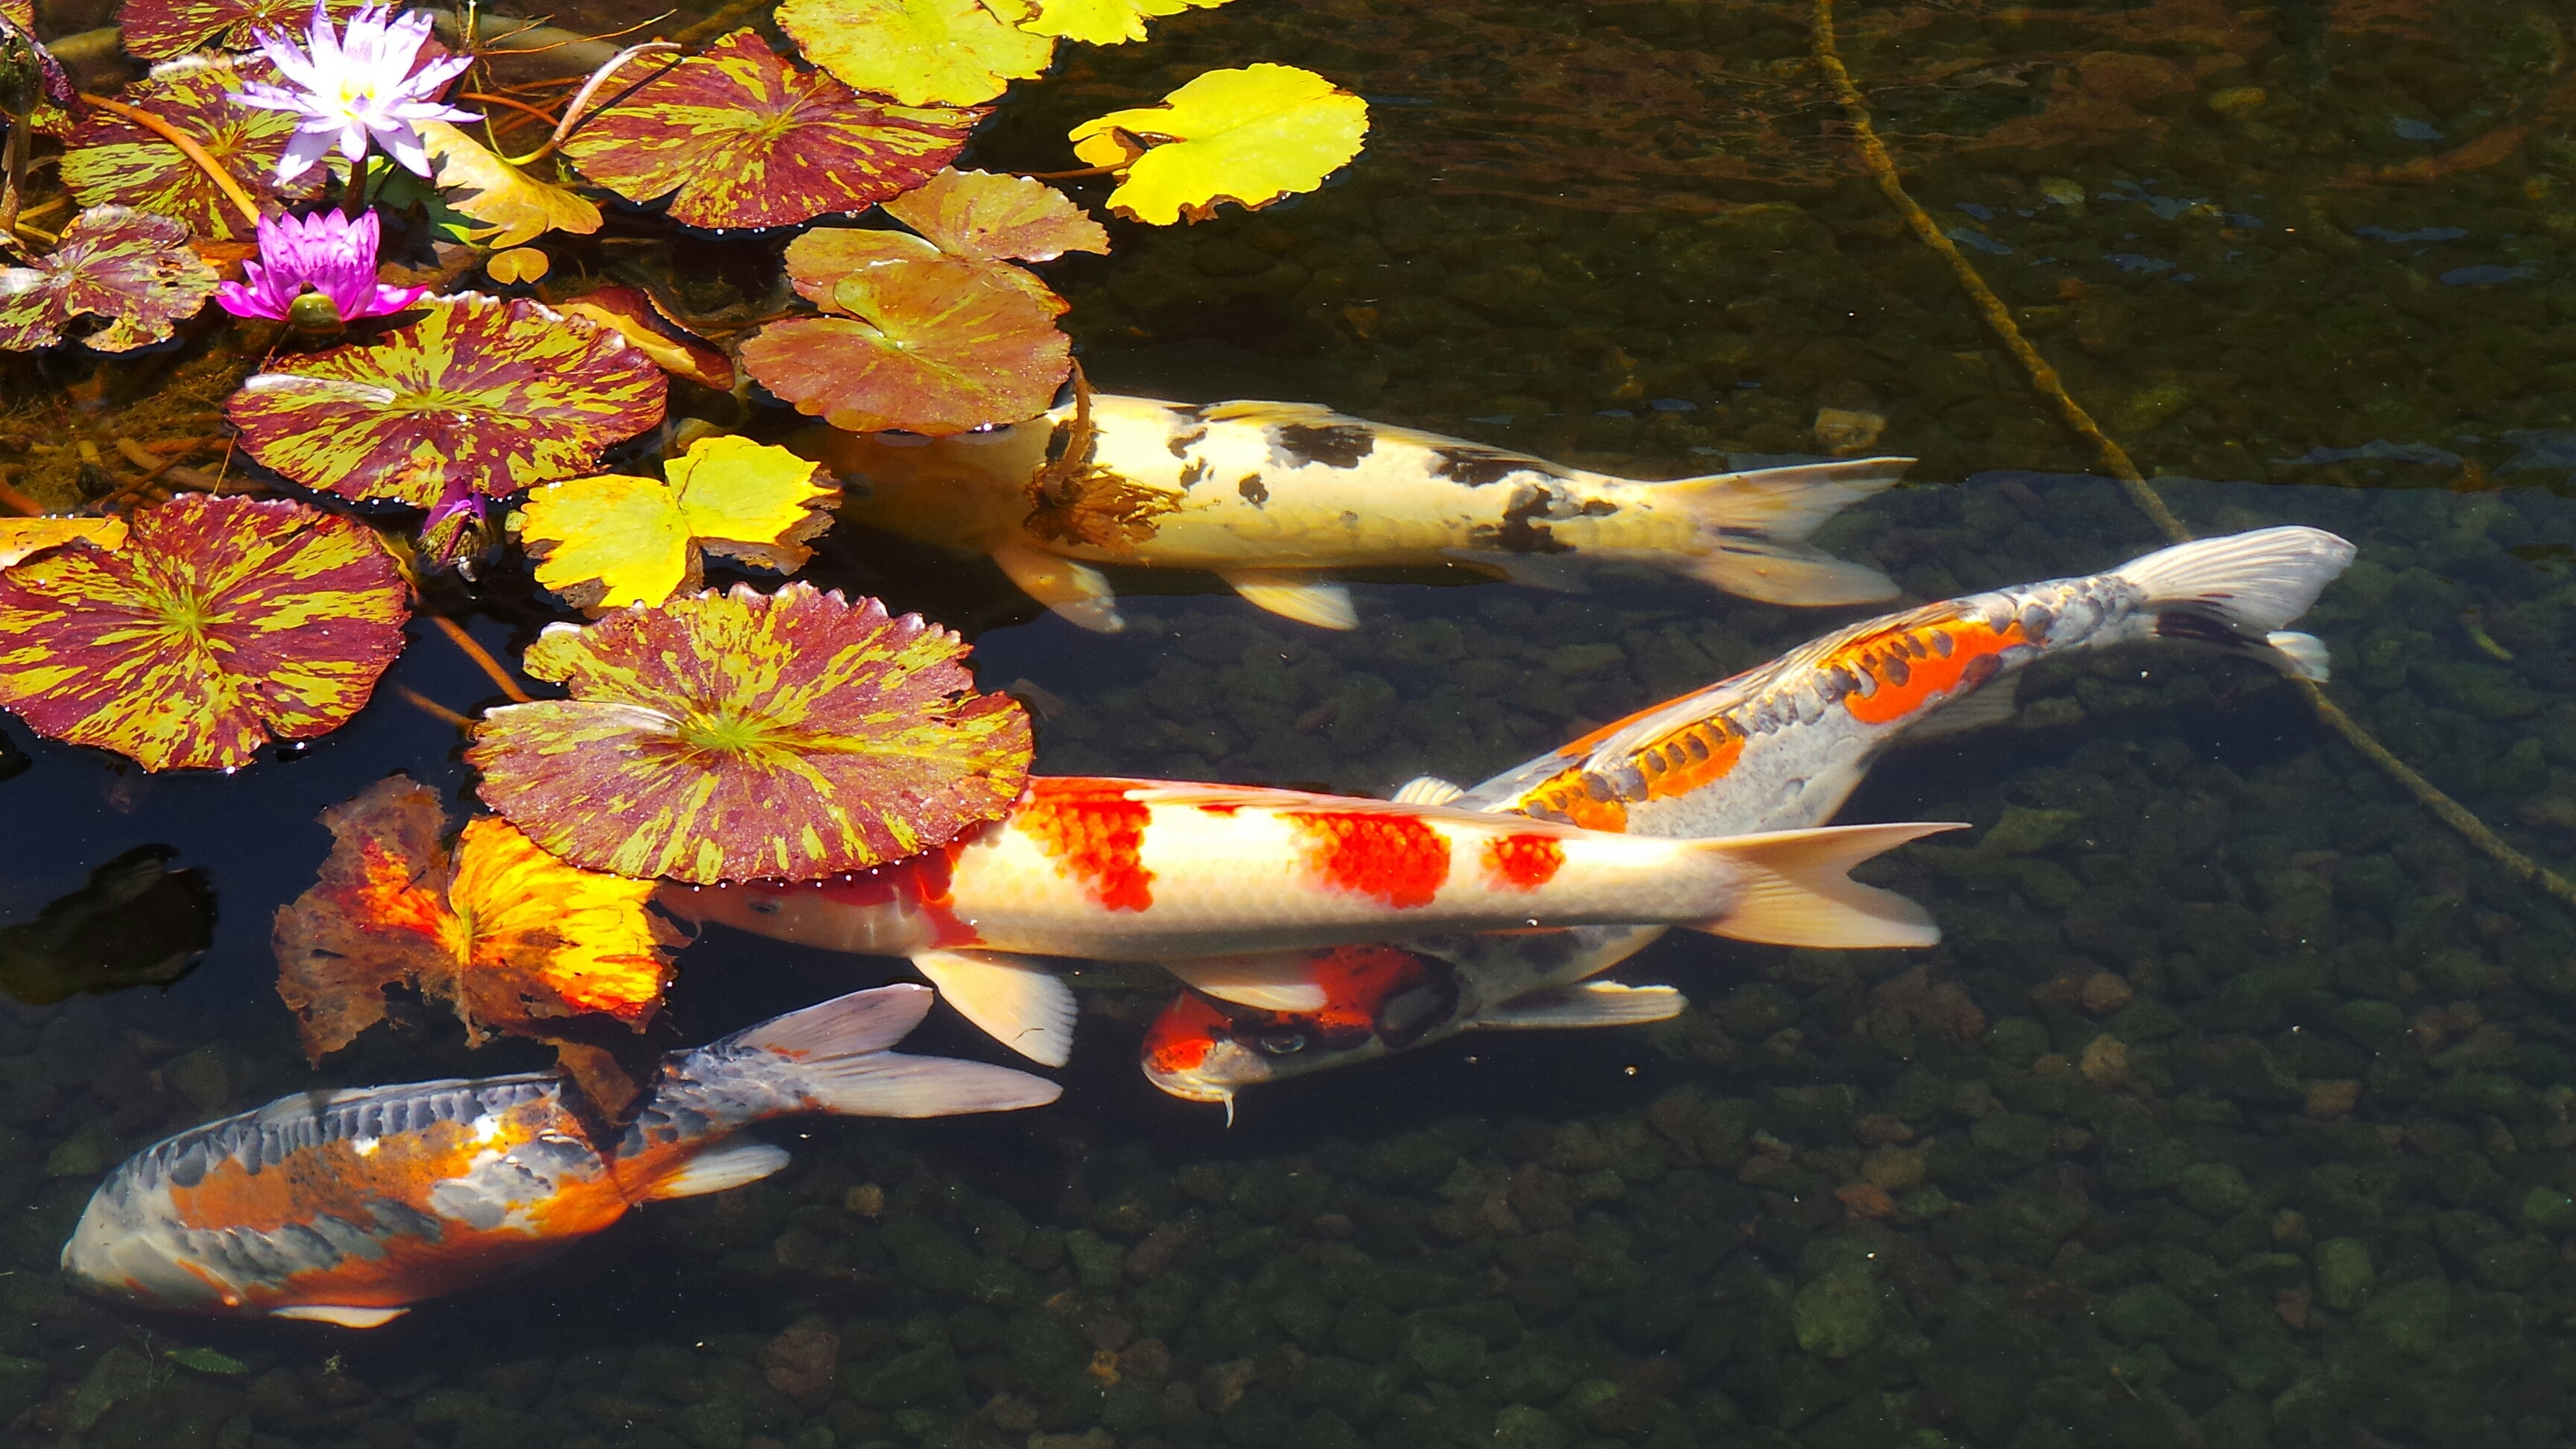 Guide to the fashion island koi ponds in newport beach for Koi pond pics